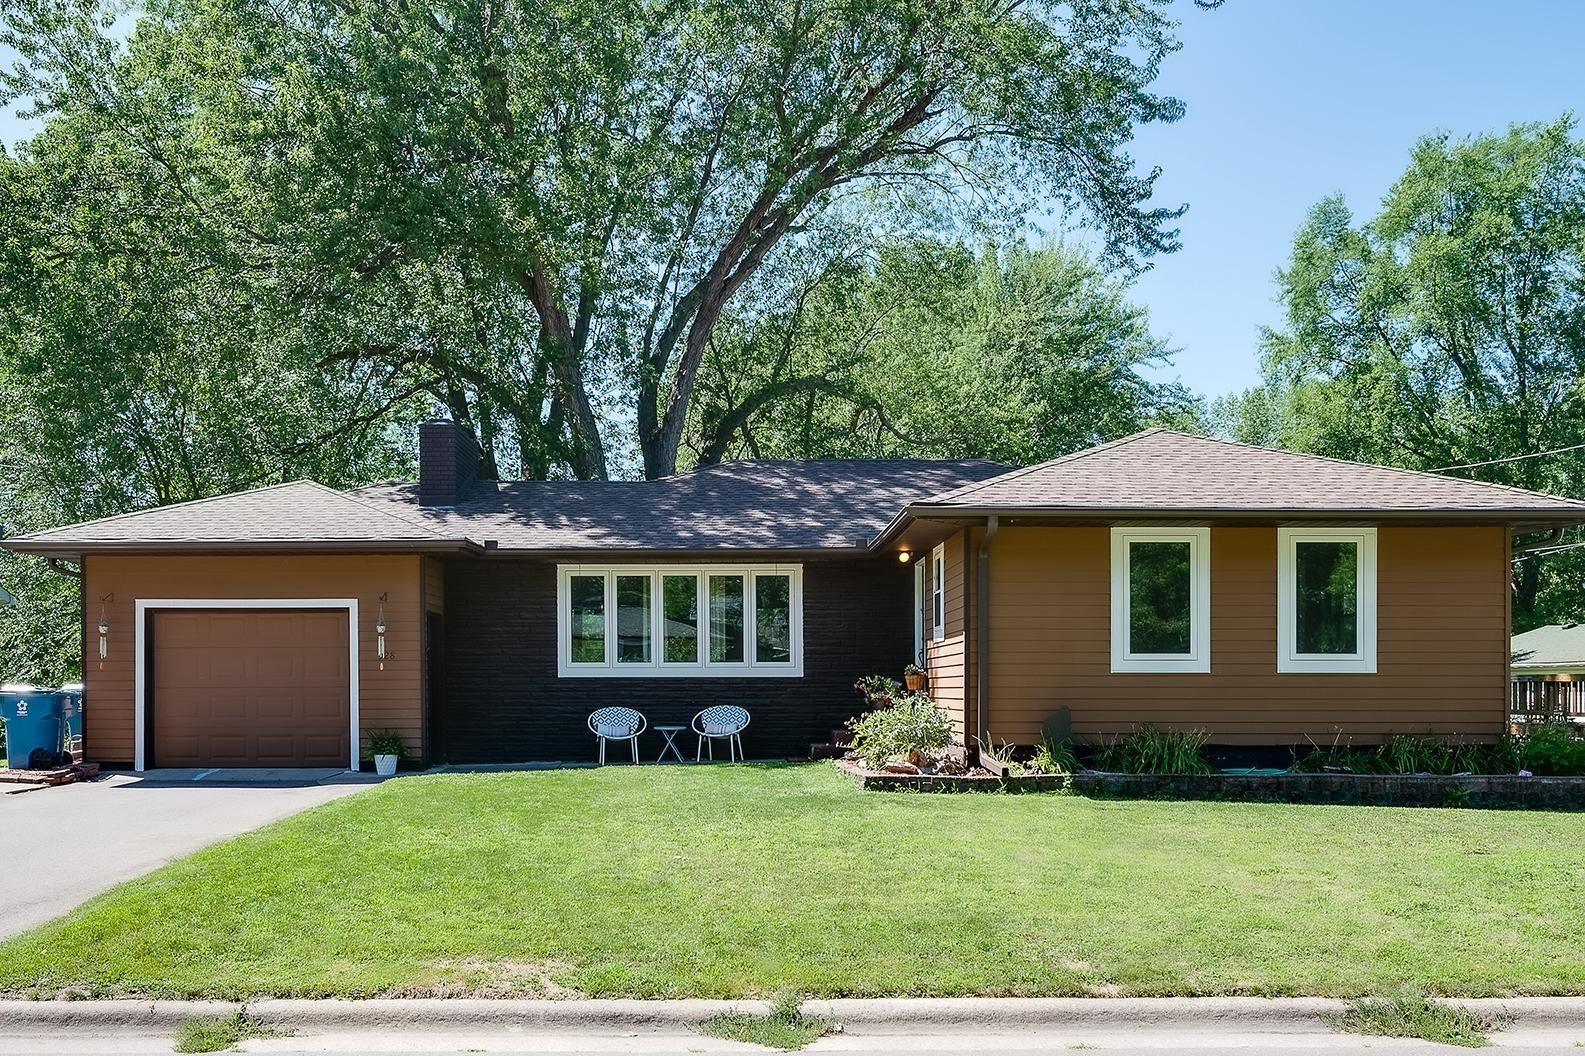 Photo of 328 4th Street NW, Forest Lake, MN 55025 (MLS # 6068789)